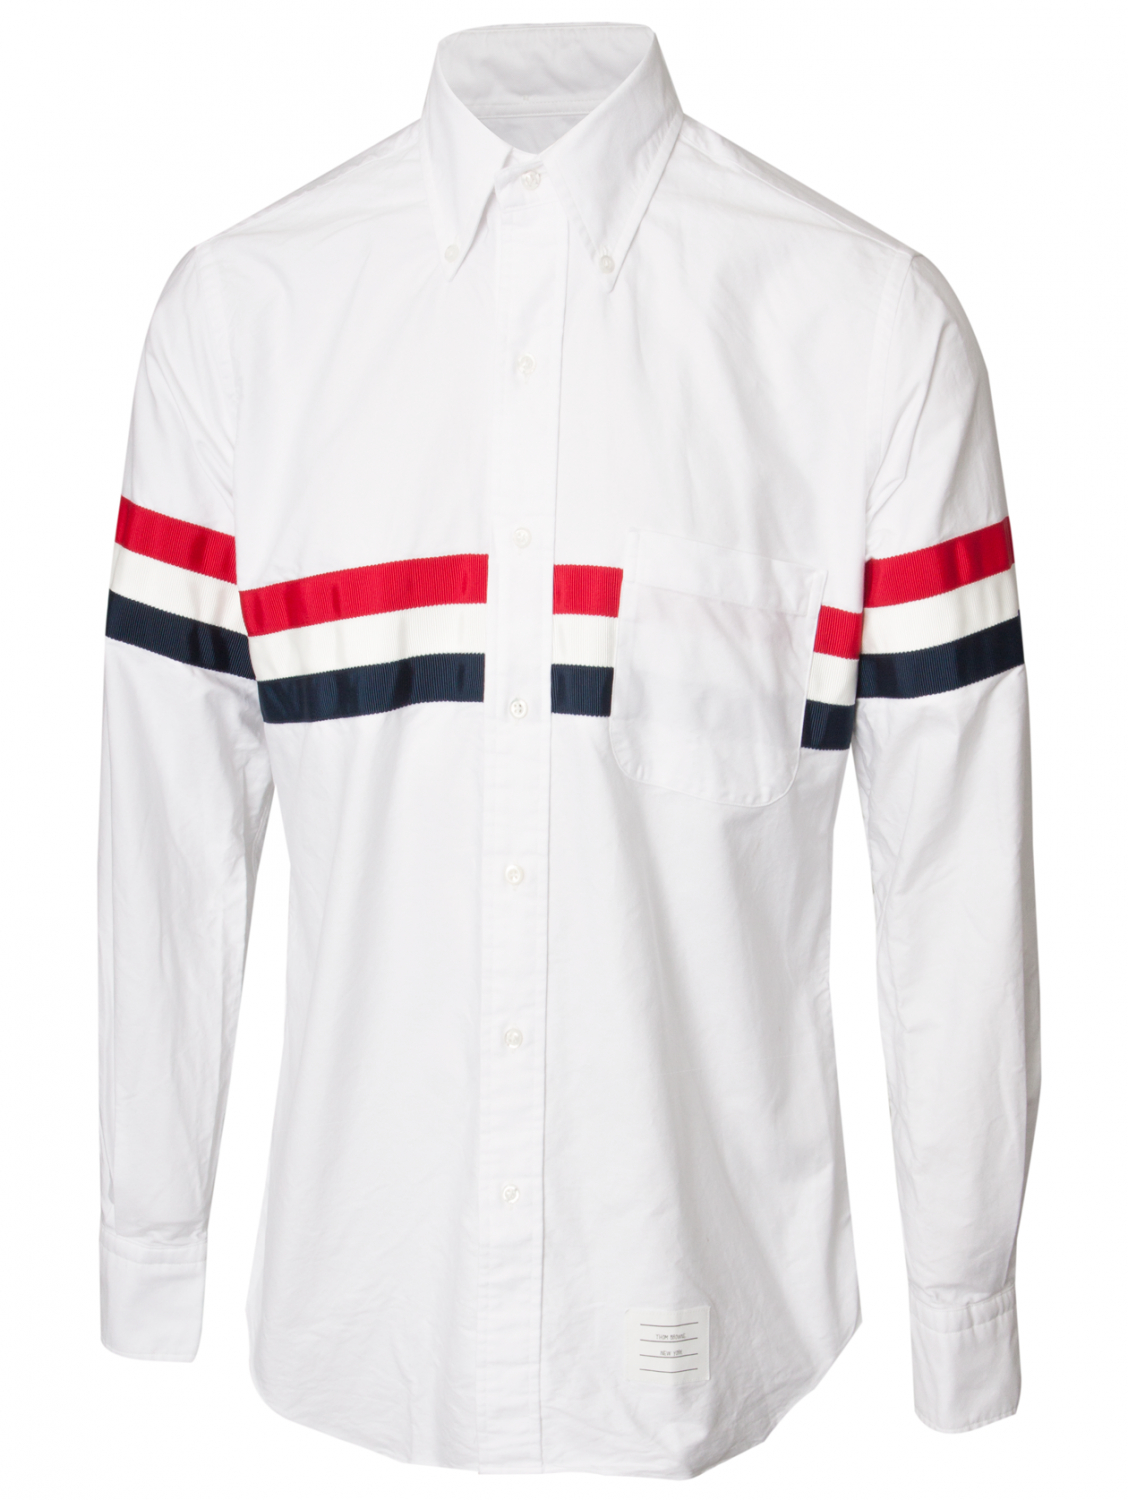 Thom browne classic oxford stripe shirt whitered blue in for White oxford shirt mens